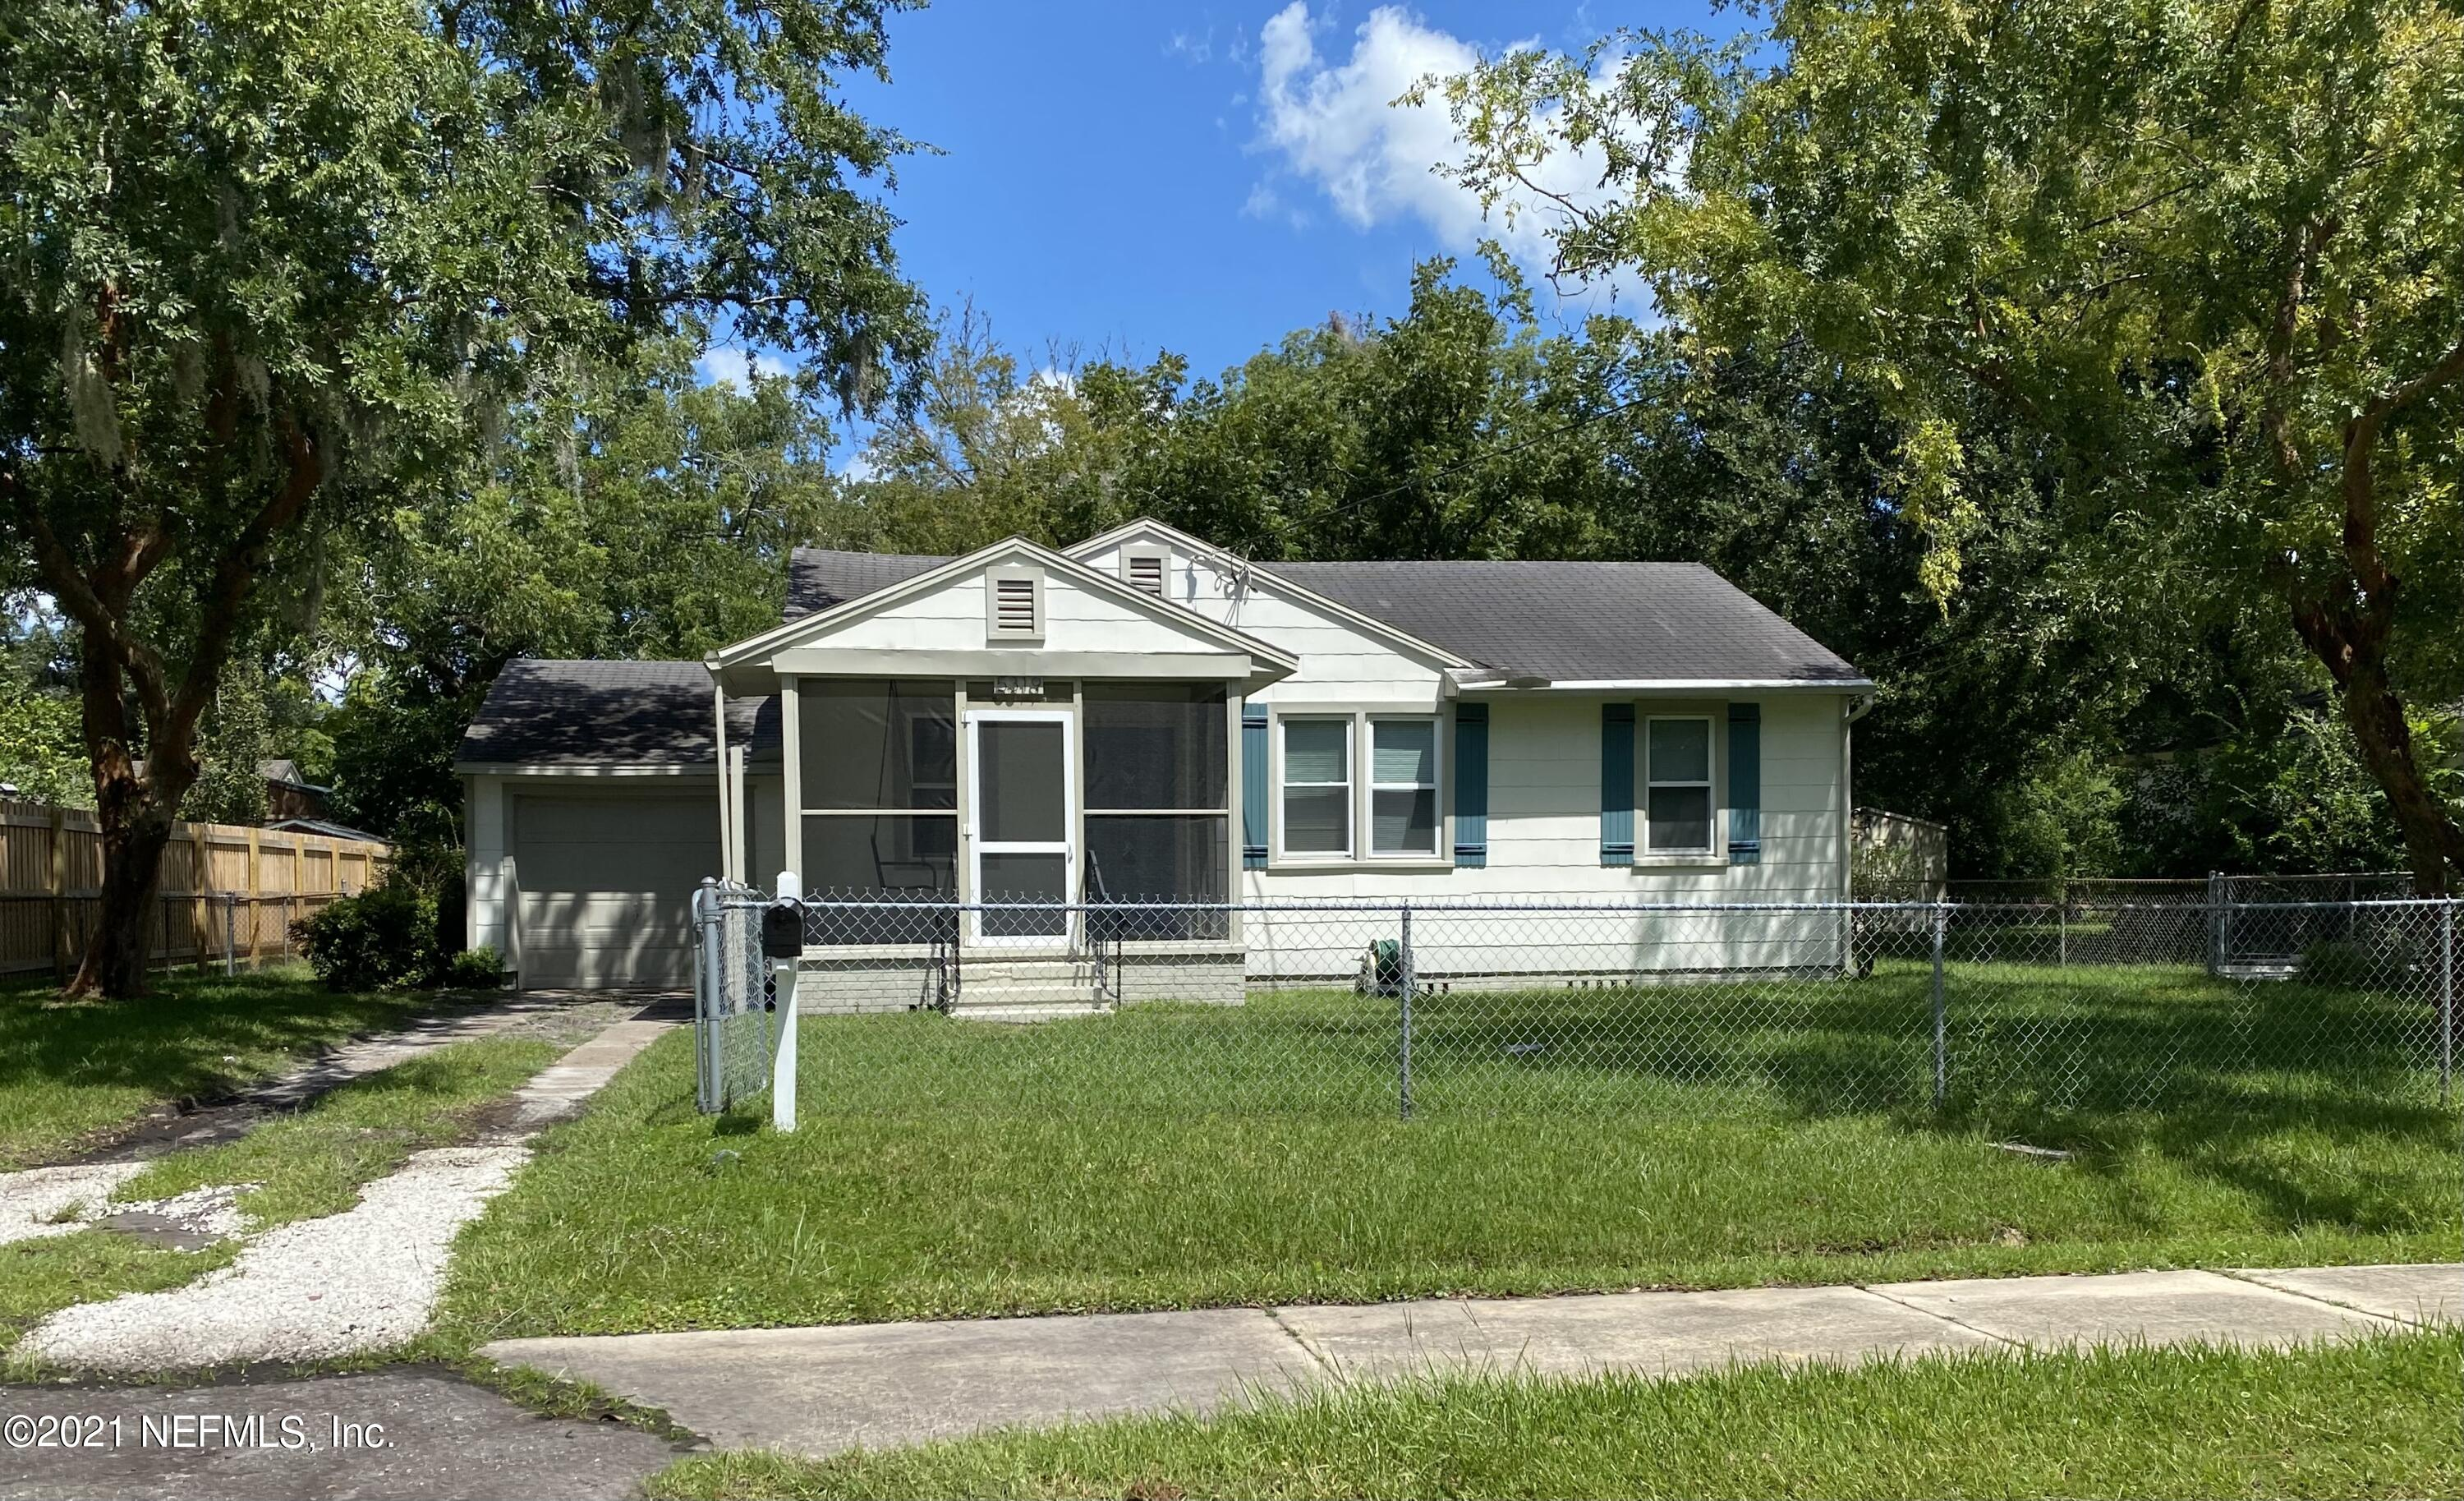 New Kitchen, New Bathroom, Painted Inside and Outside, Refinished Hardwood Floors, Newer Windows, Newer A/C Unit, New Water Heater, Newly Screened Front Porch, Fenced Yard, Move In Ready!